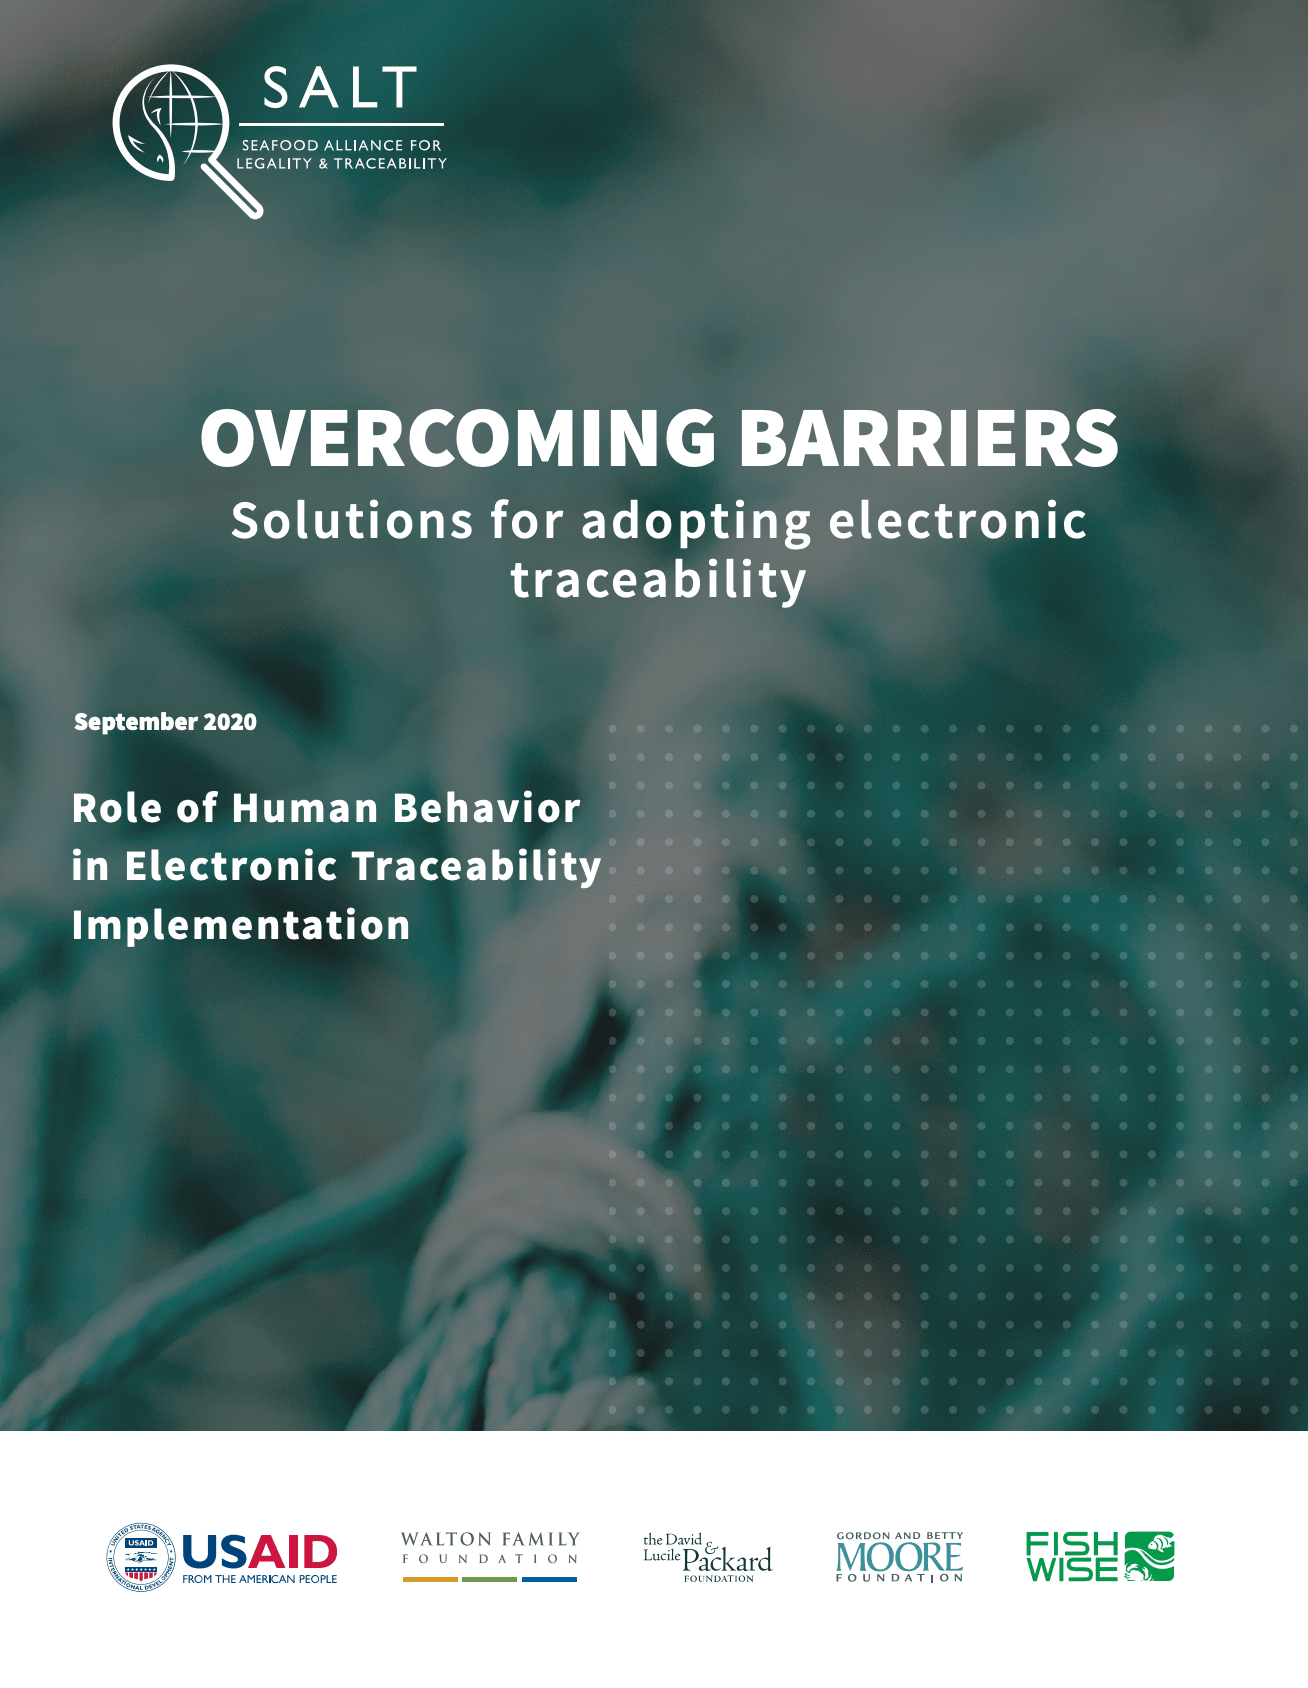 Overcoming Barriers: Role of Human Behavior in Electronic Traceability Implementation